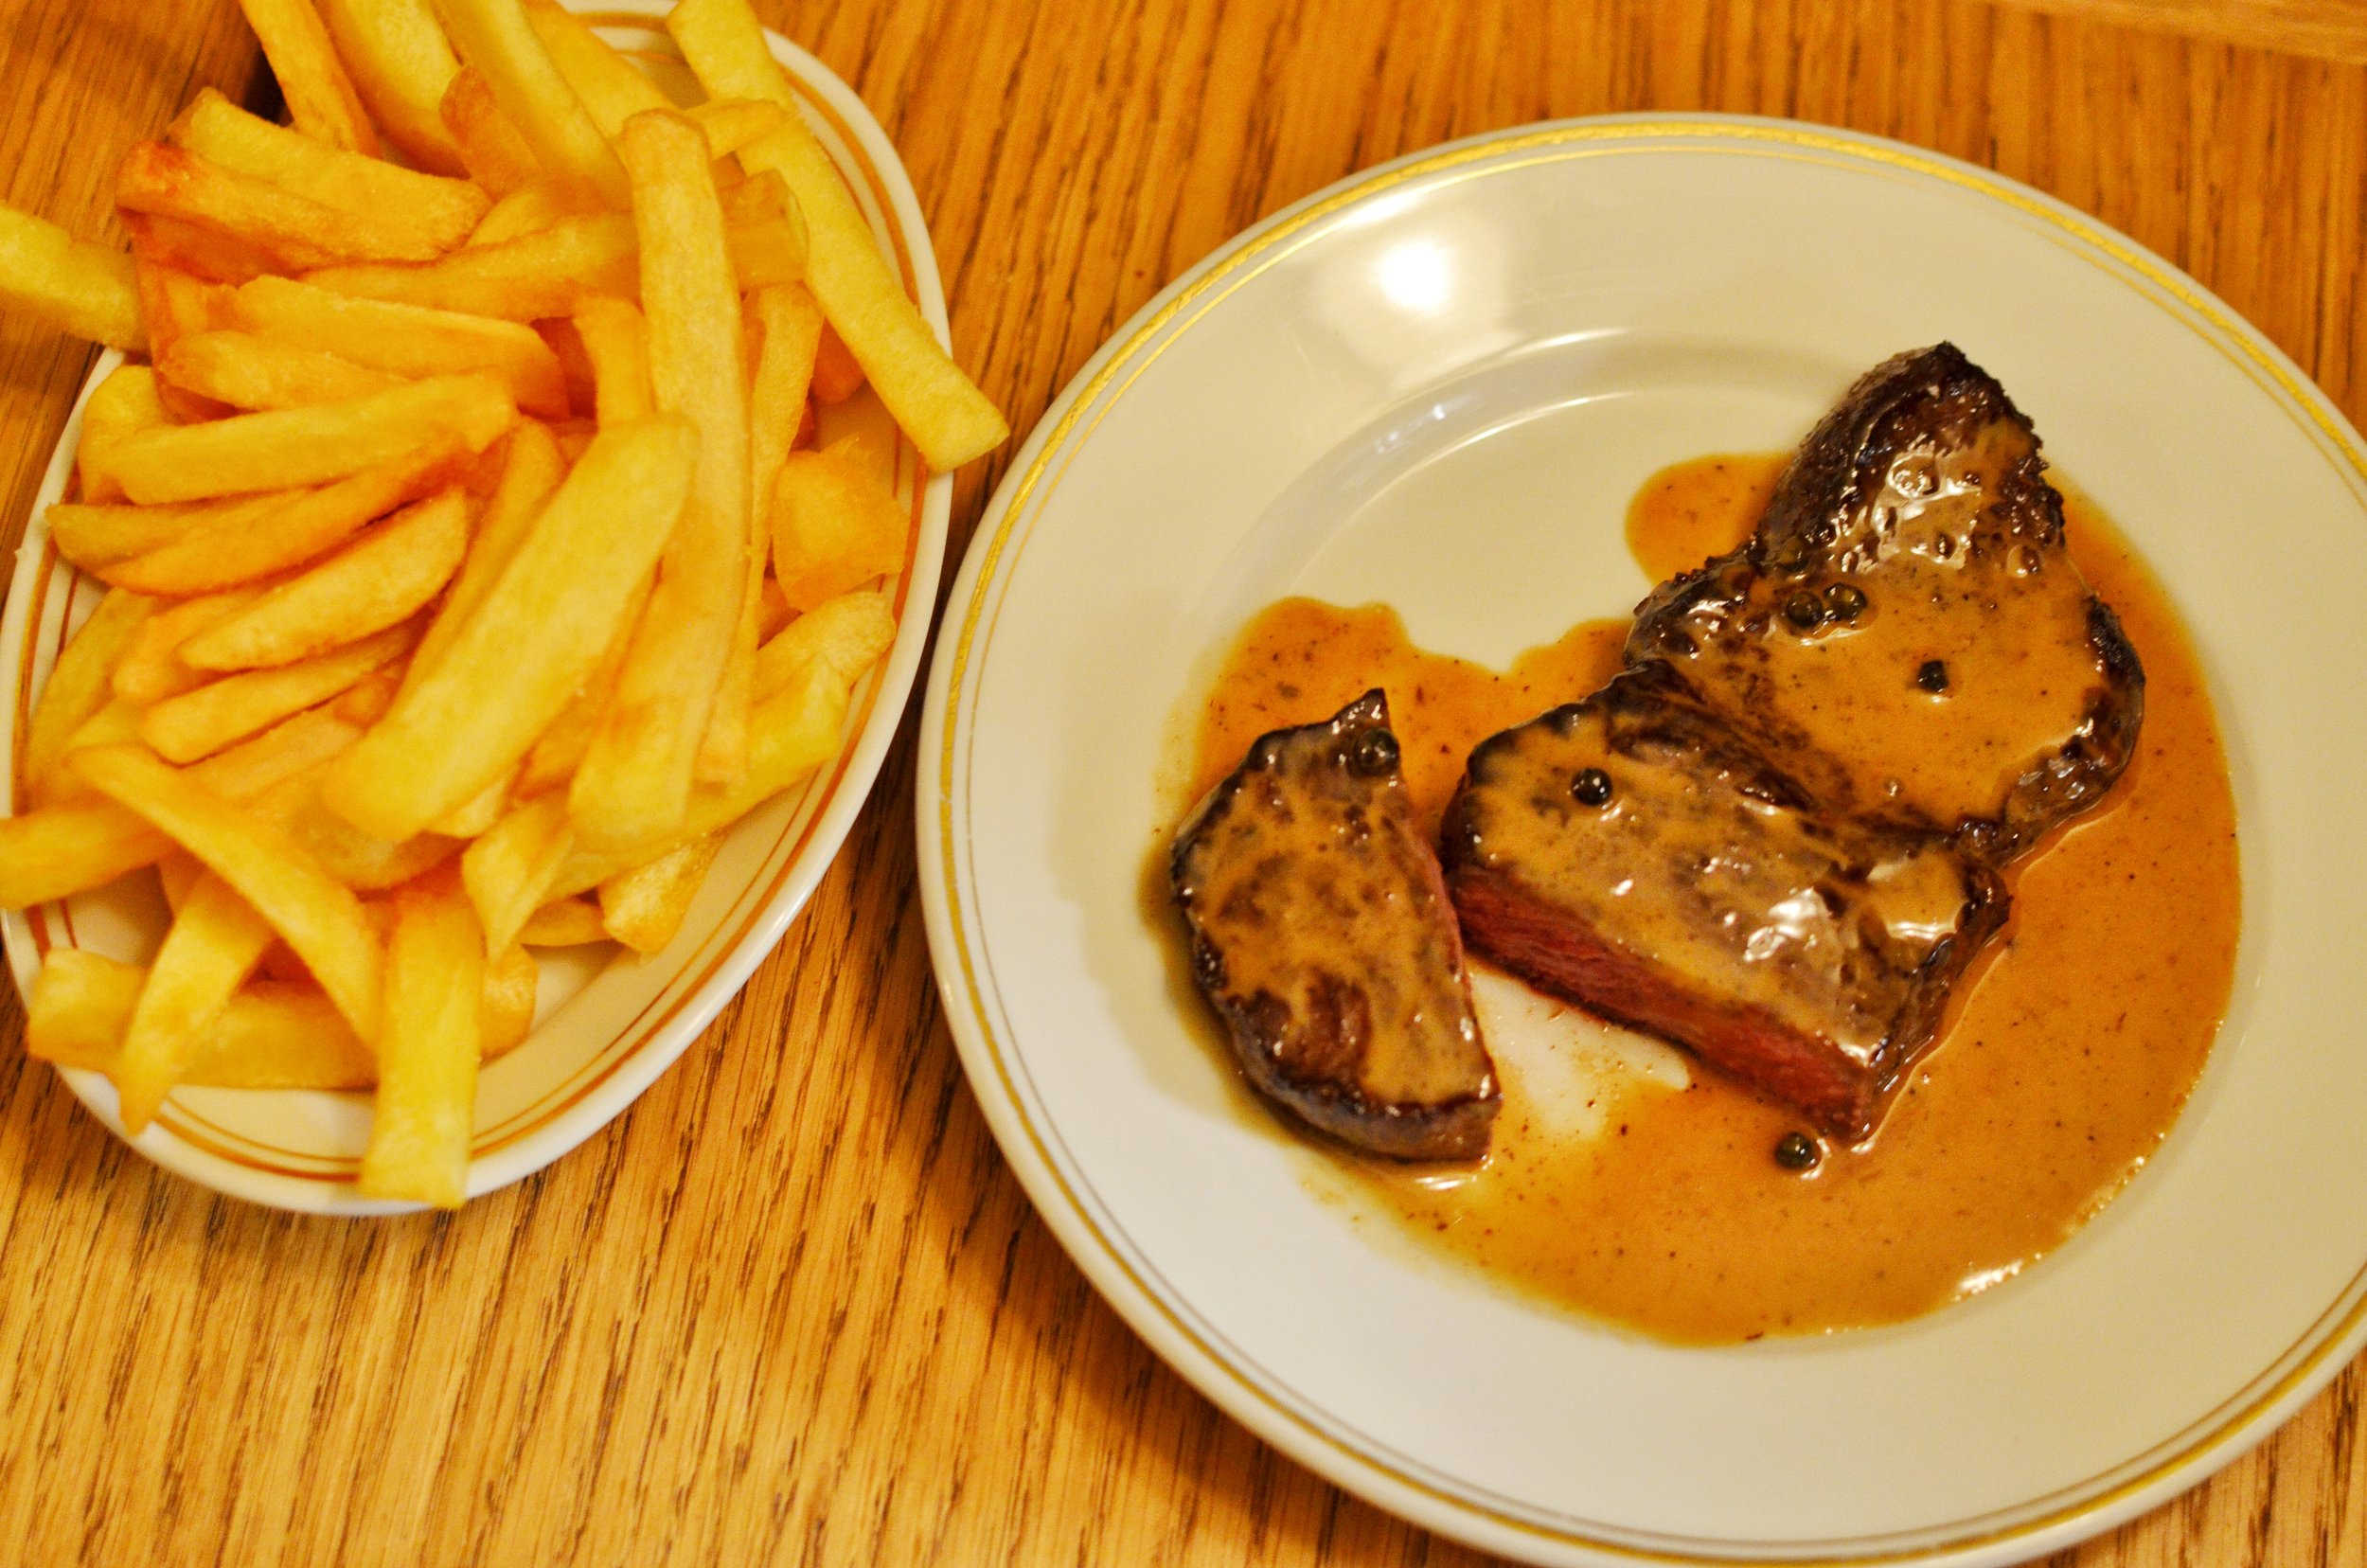 Steak and frites- This is the restaurant's signature dish and it was delicious. The pepper sauce is what sold me on this dish. Take some of your fries and dip it in the sauce and you'll see what I mean.